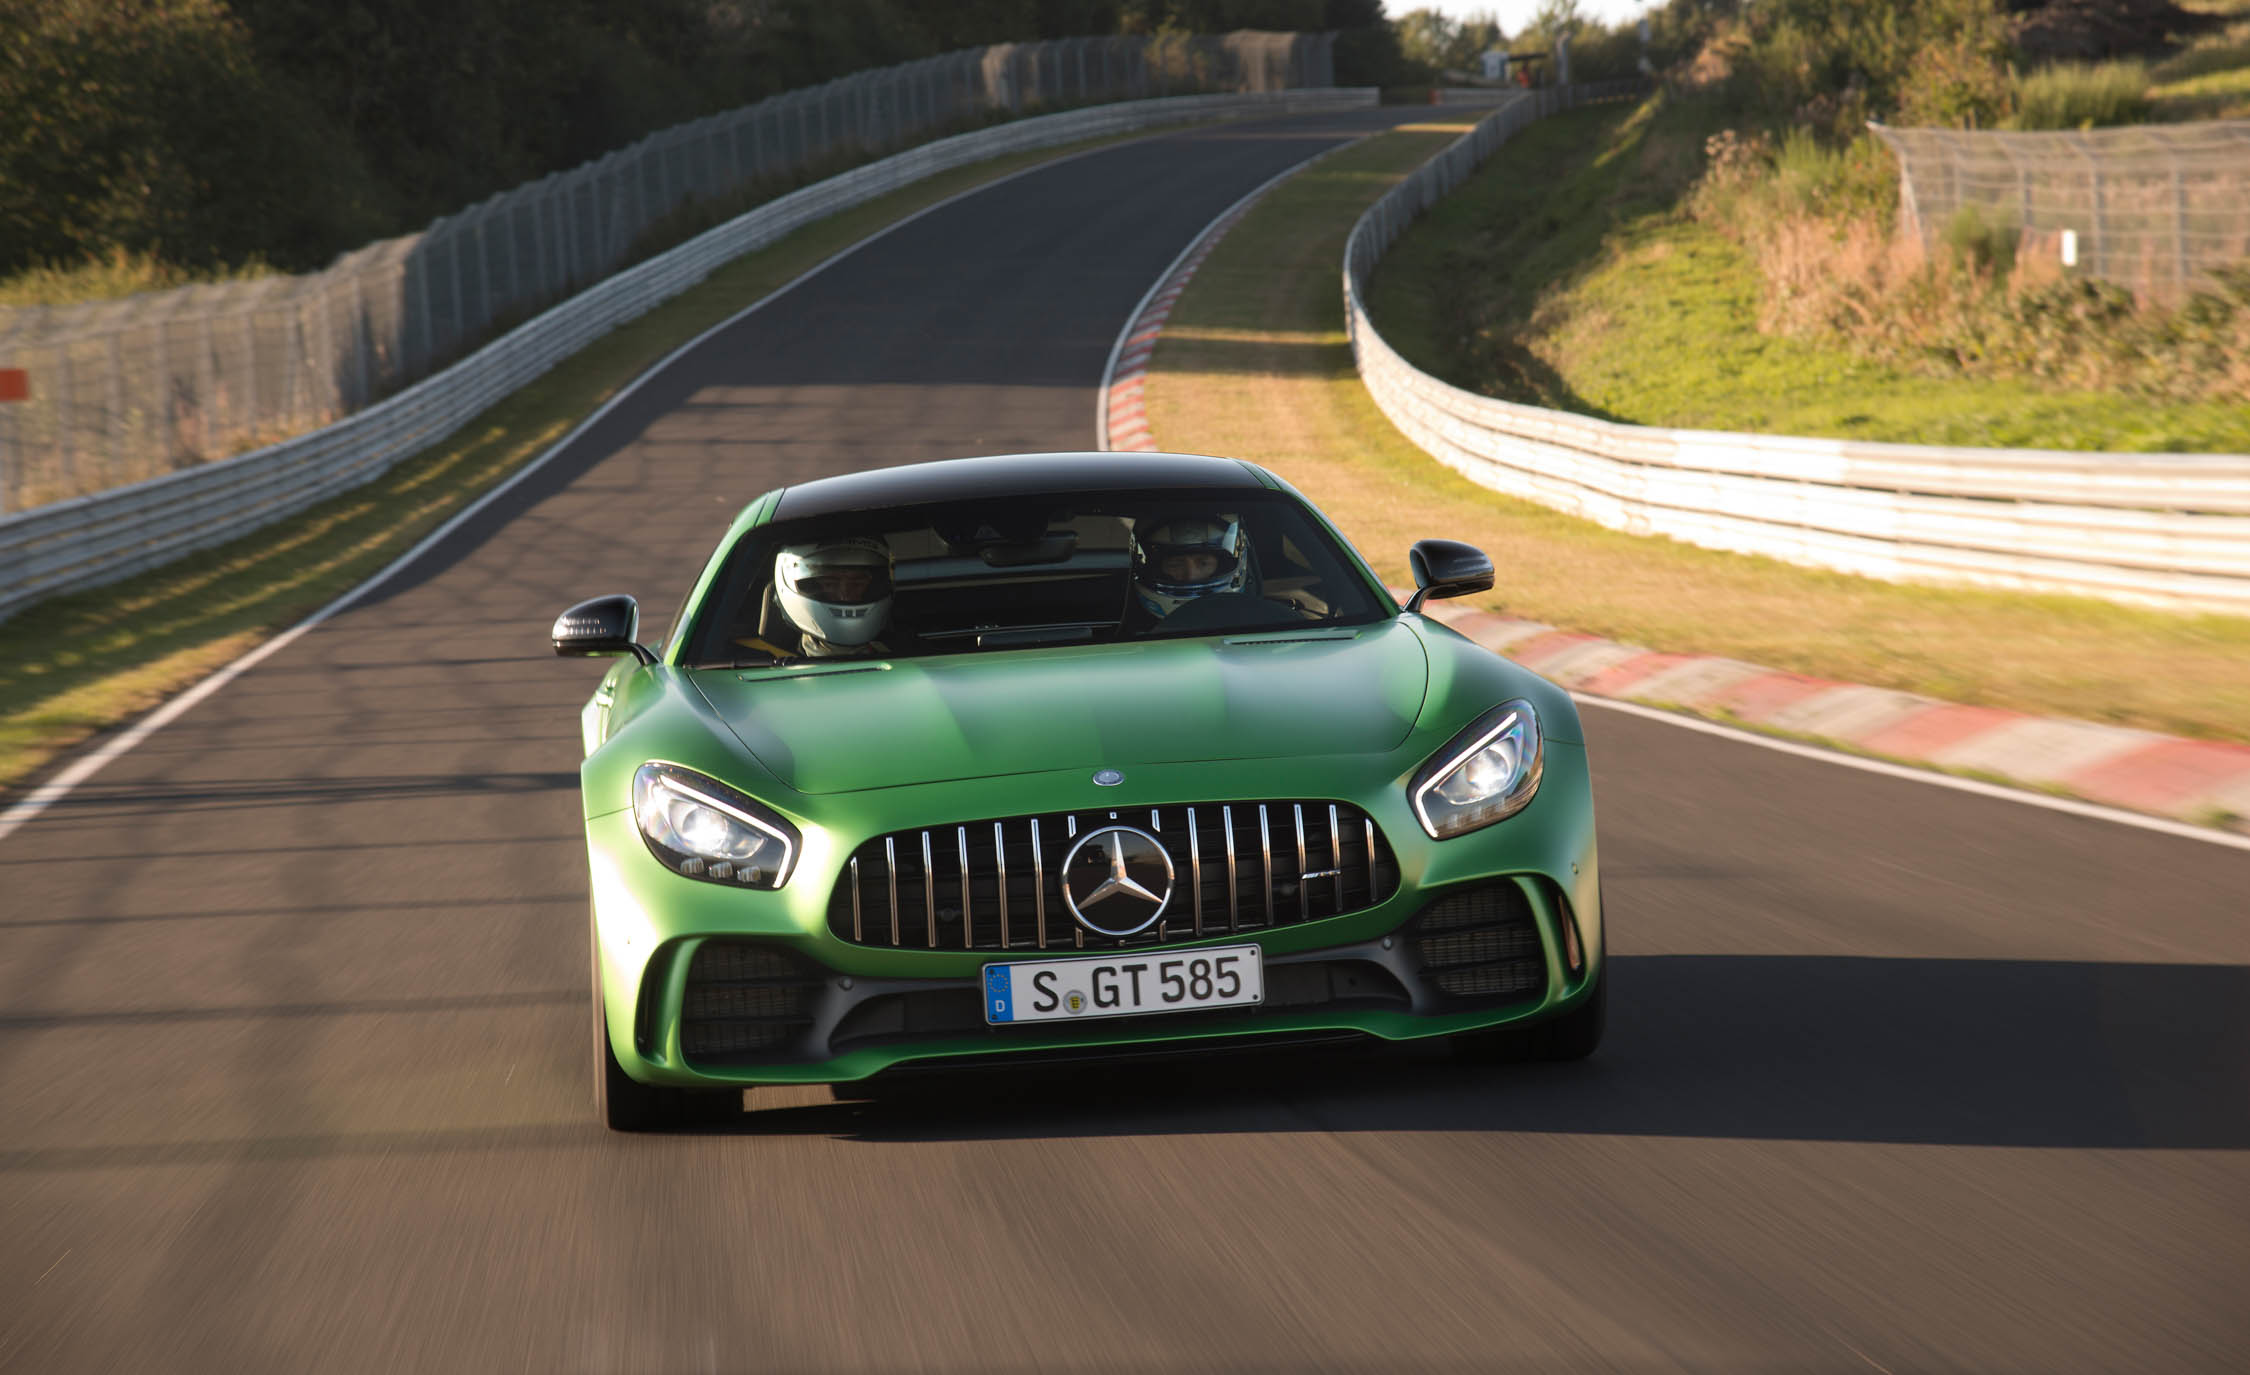 2017 Mercedes Amg Gt R Circuit Test Front View (View 18 of 22)